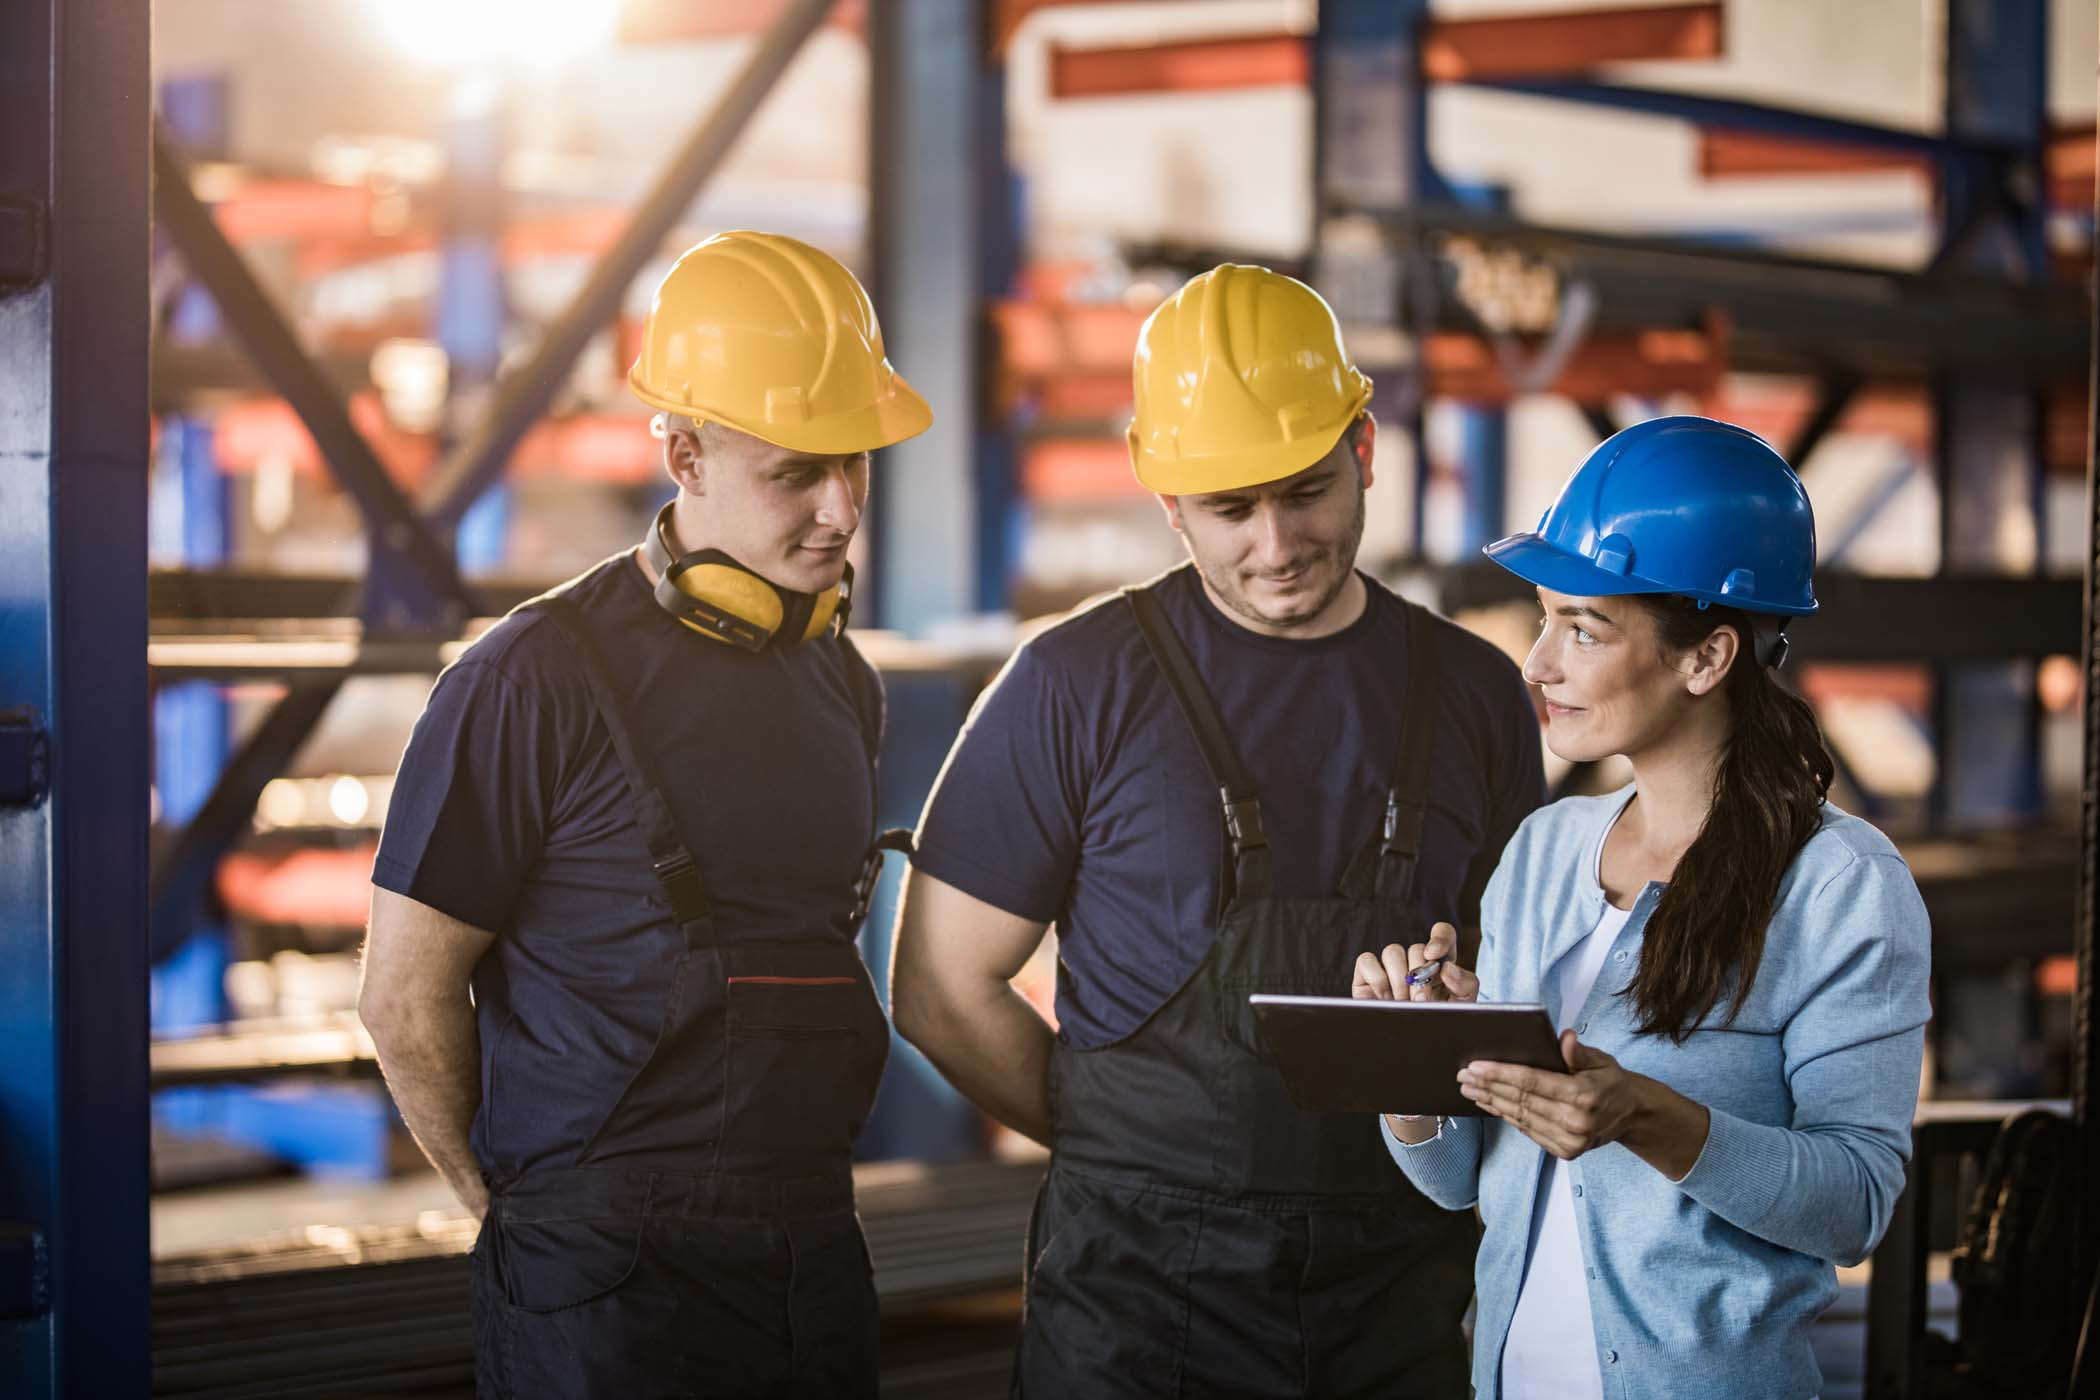 Two manual workers cooperating with female inspector who is working on digital tablet in a warehouse. Focus is on woman.